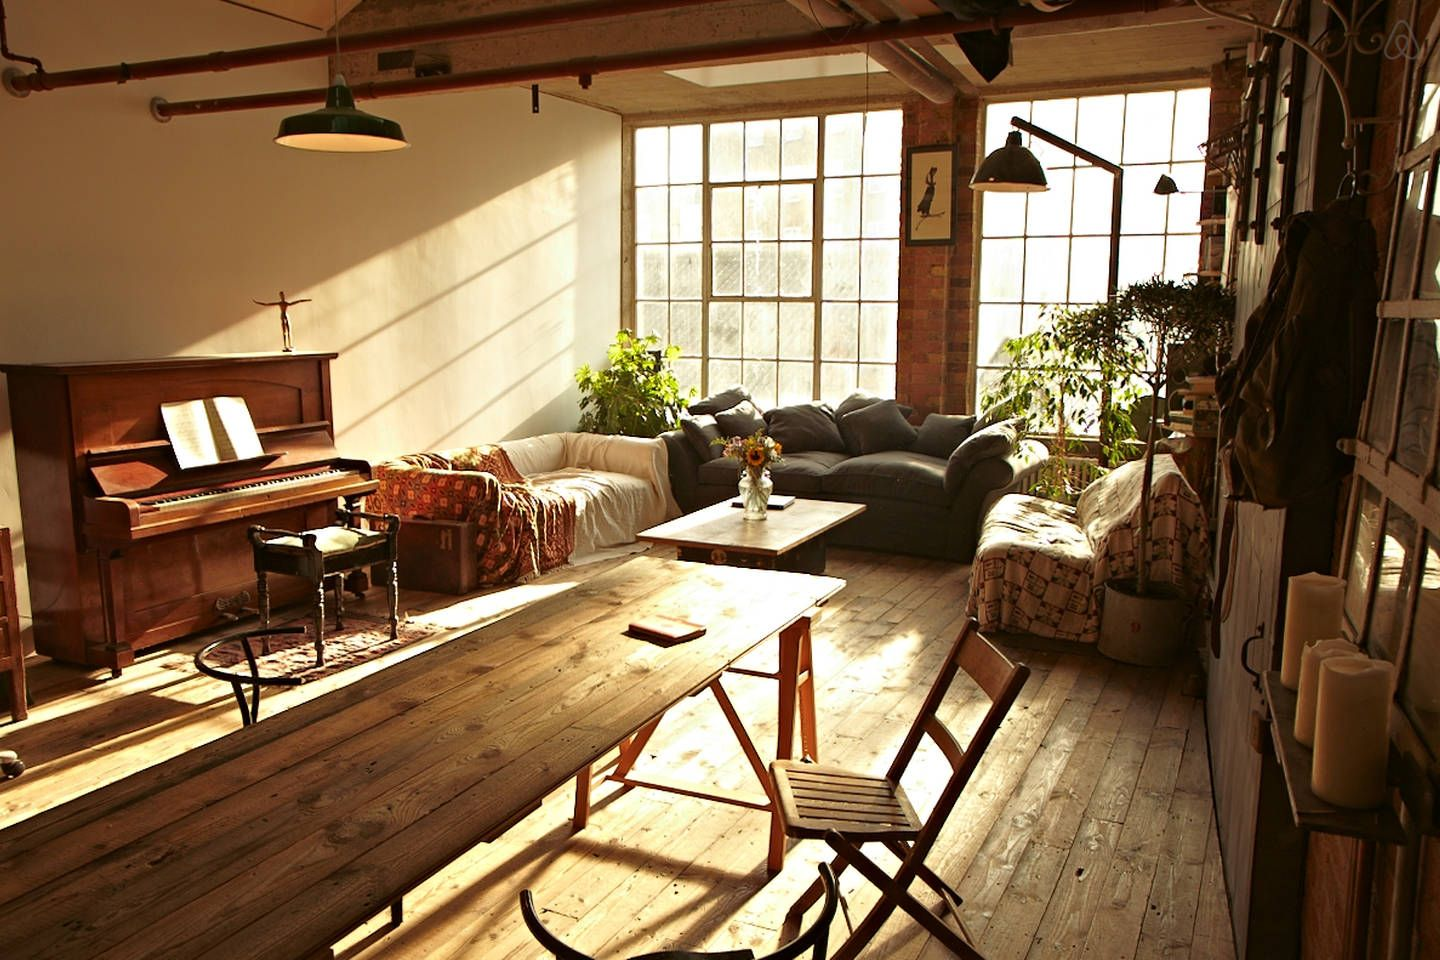 EntireHome:1000+Sq Ft Loft in Former Shoe Factory - 伦敦的阁楼 出租, 英国